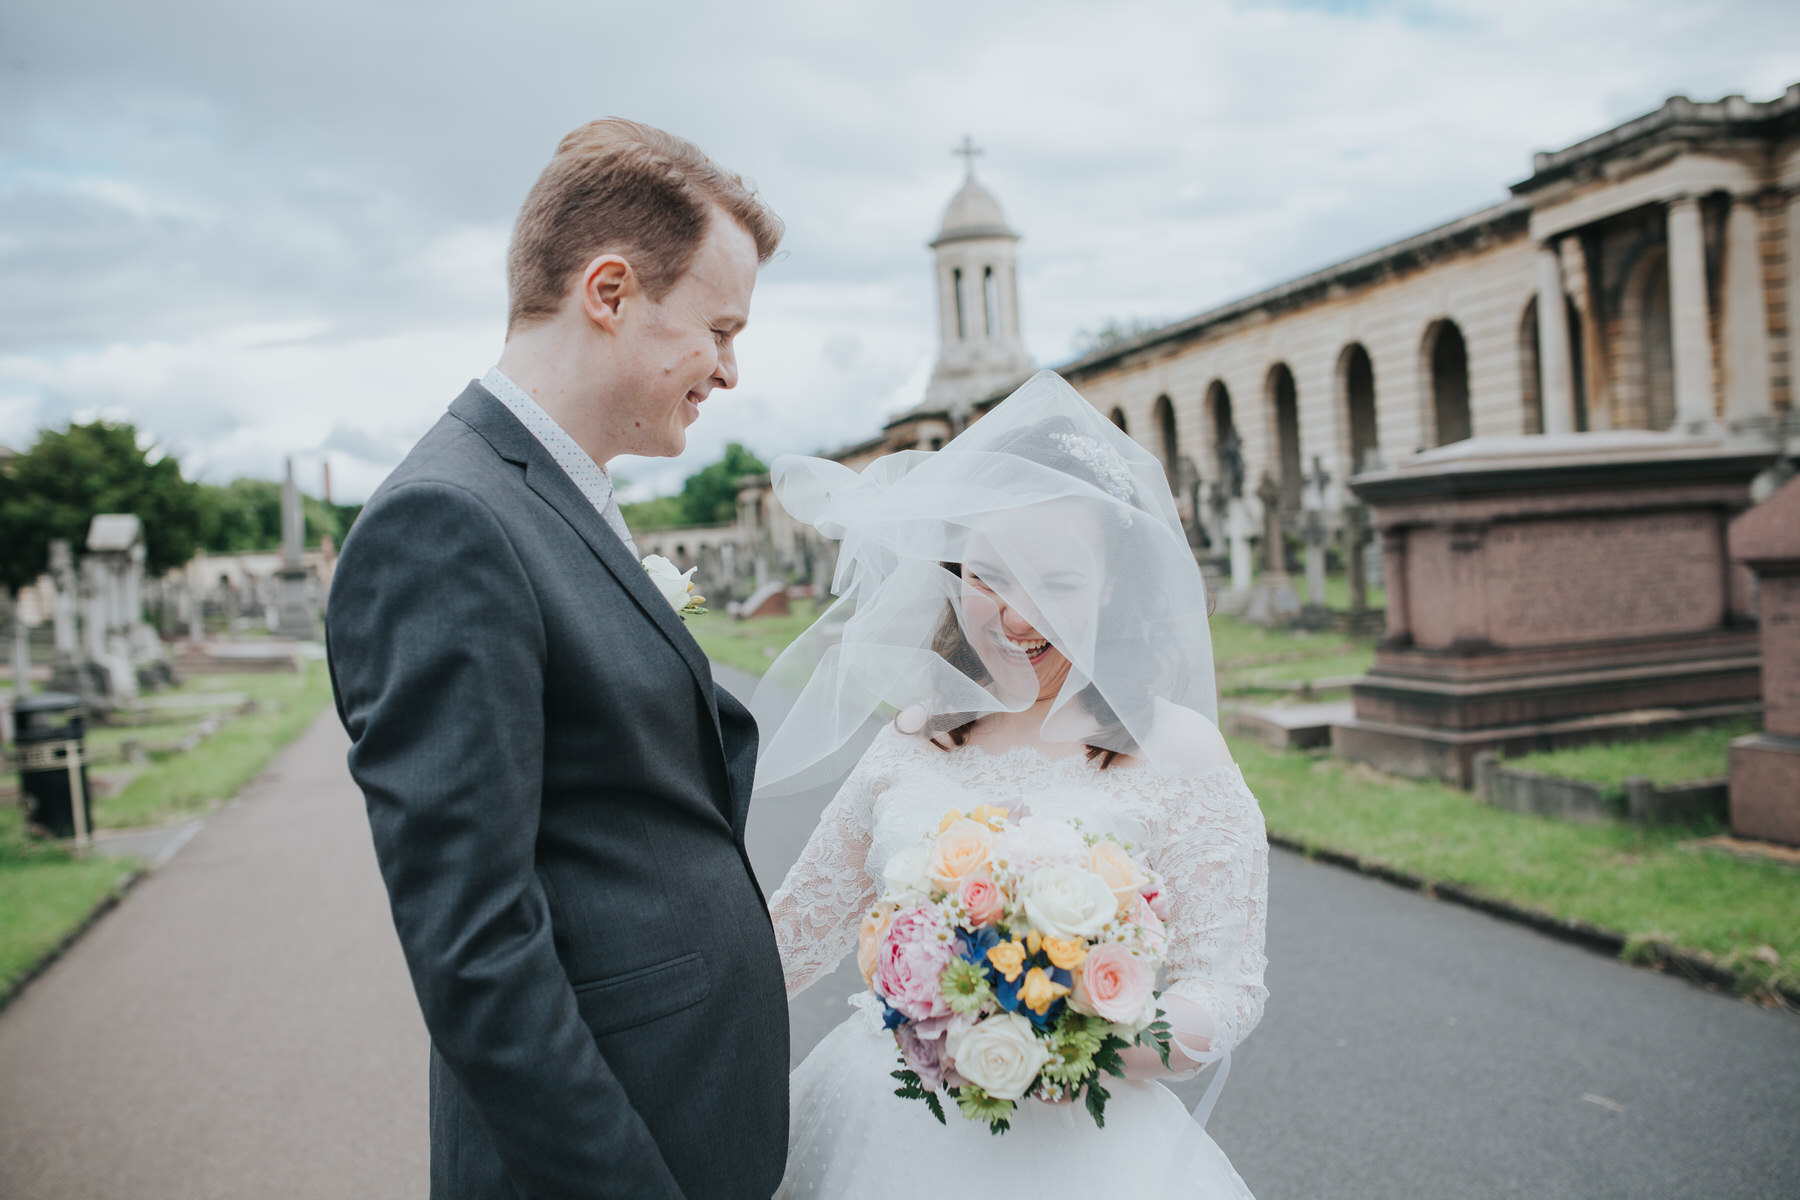 146 groom bride windy veil wedding portraits Brompton Cemetery.jpg